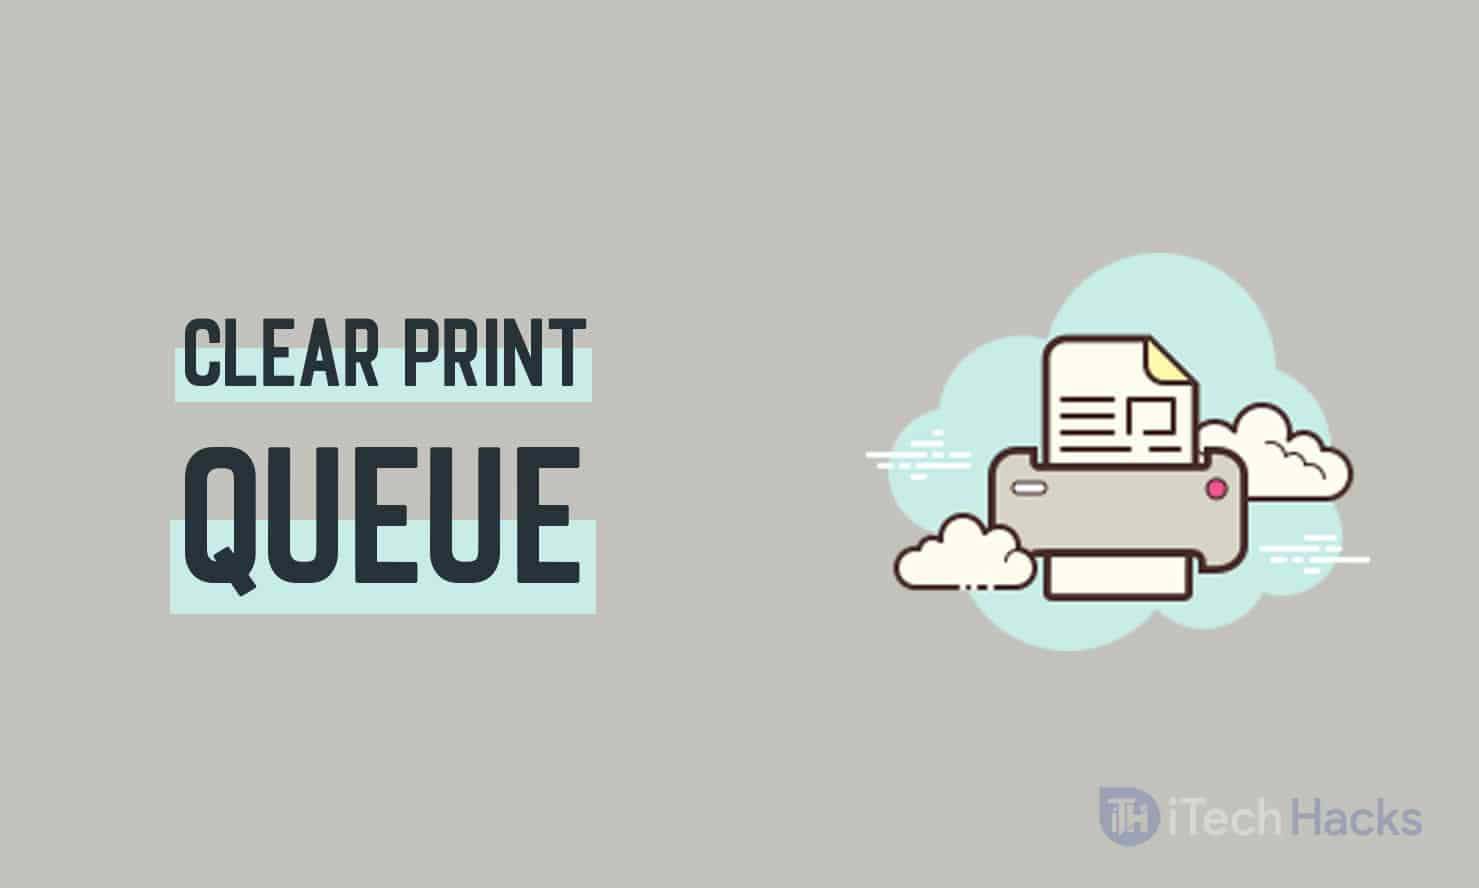 How to Clear Print Queue in Windows Easily